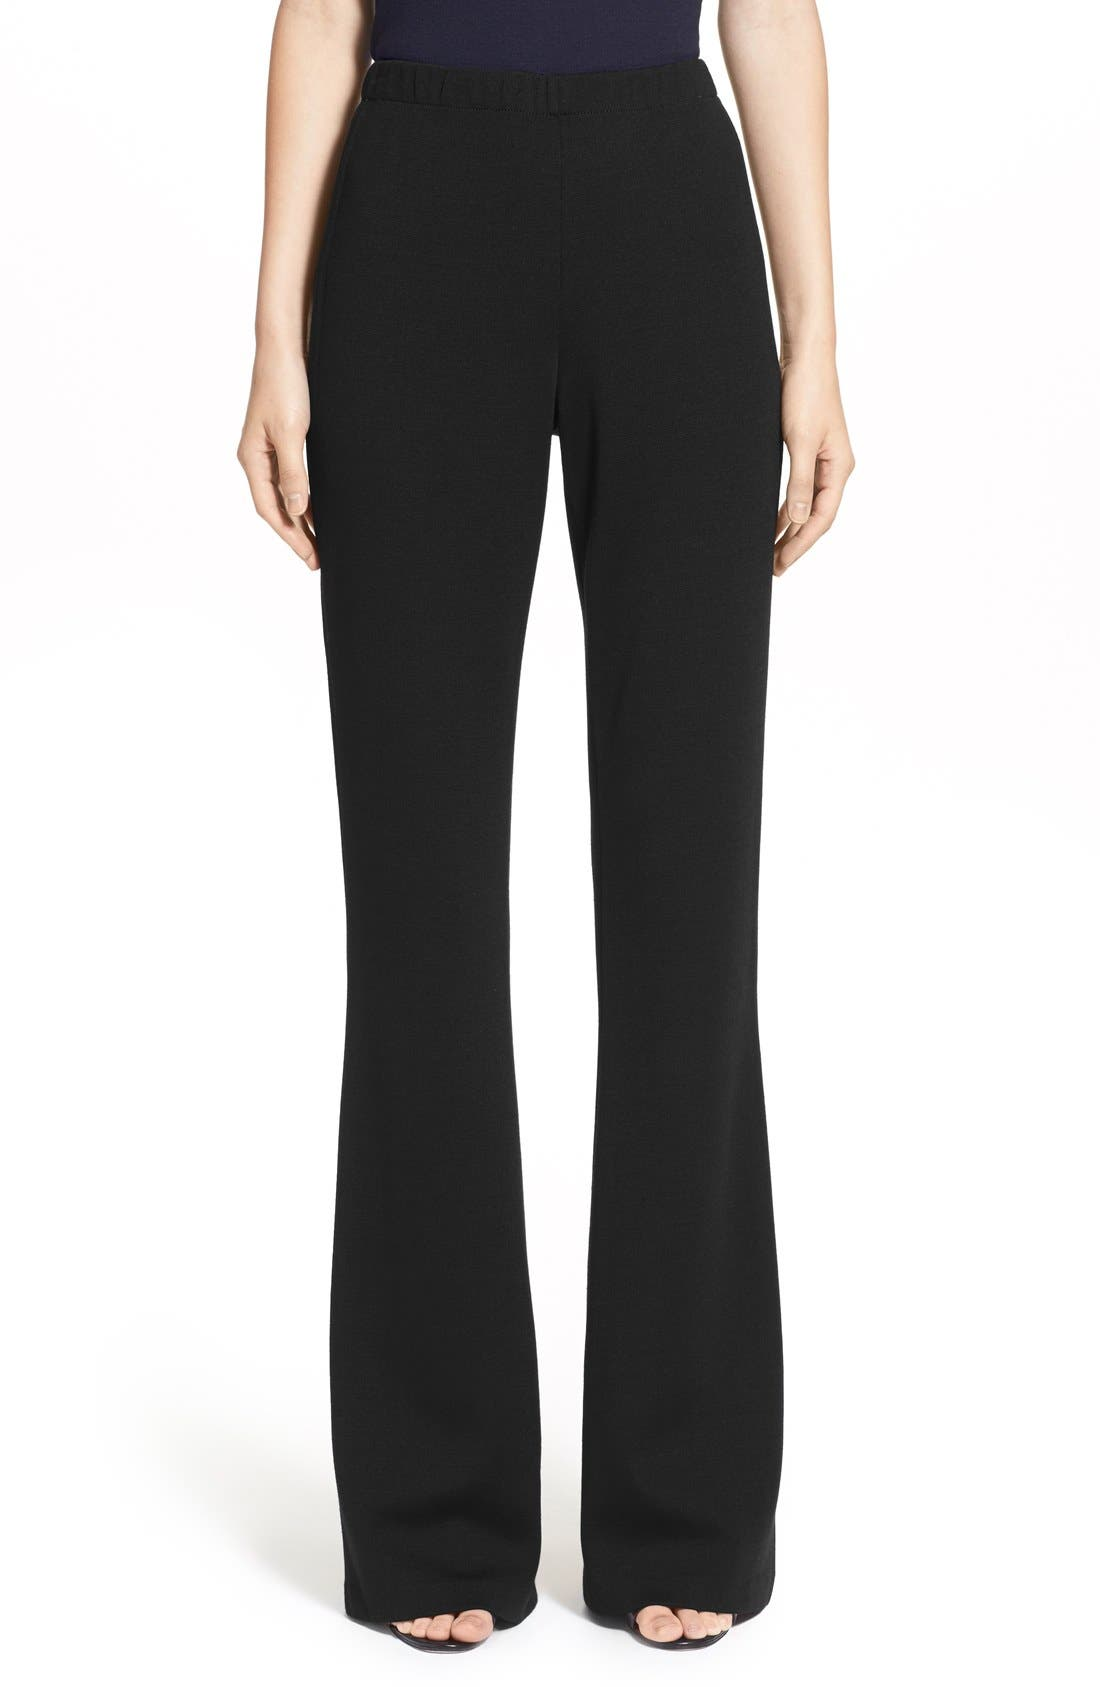 Alternate Image 1 Selected - St. John Collection 'Kasia' Bootcut Milano Knit Pants